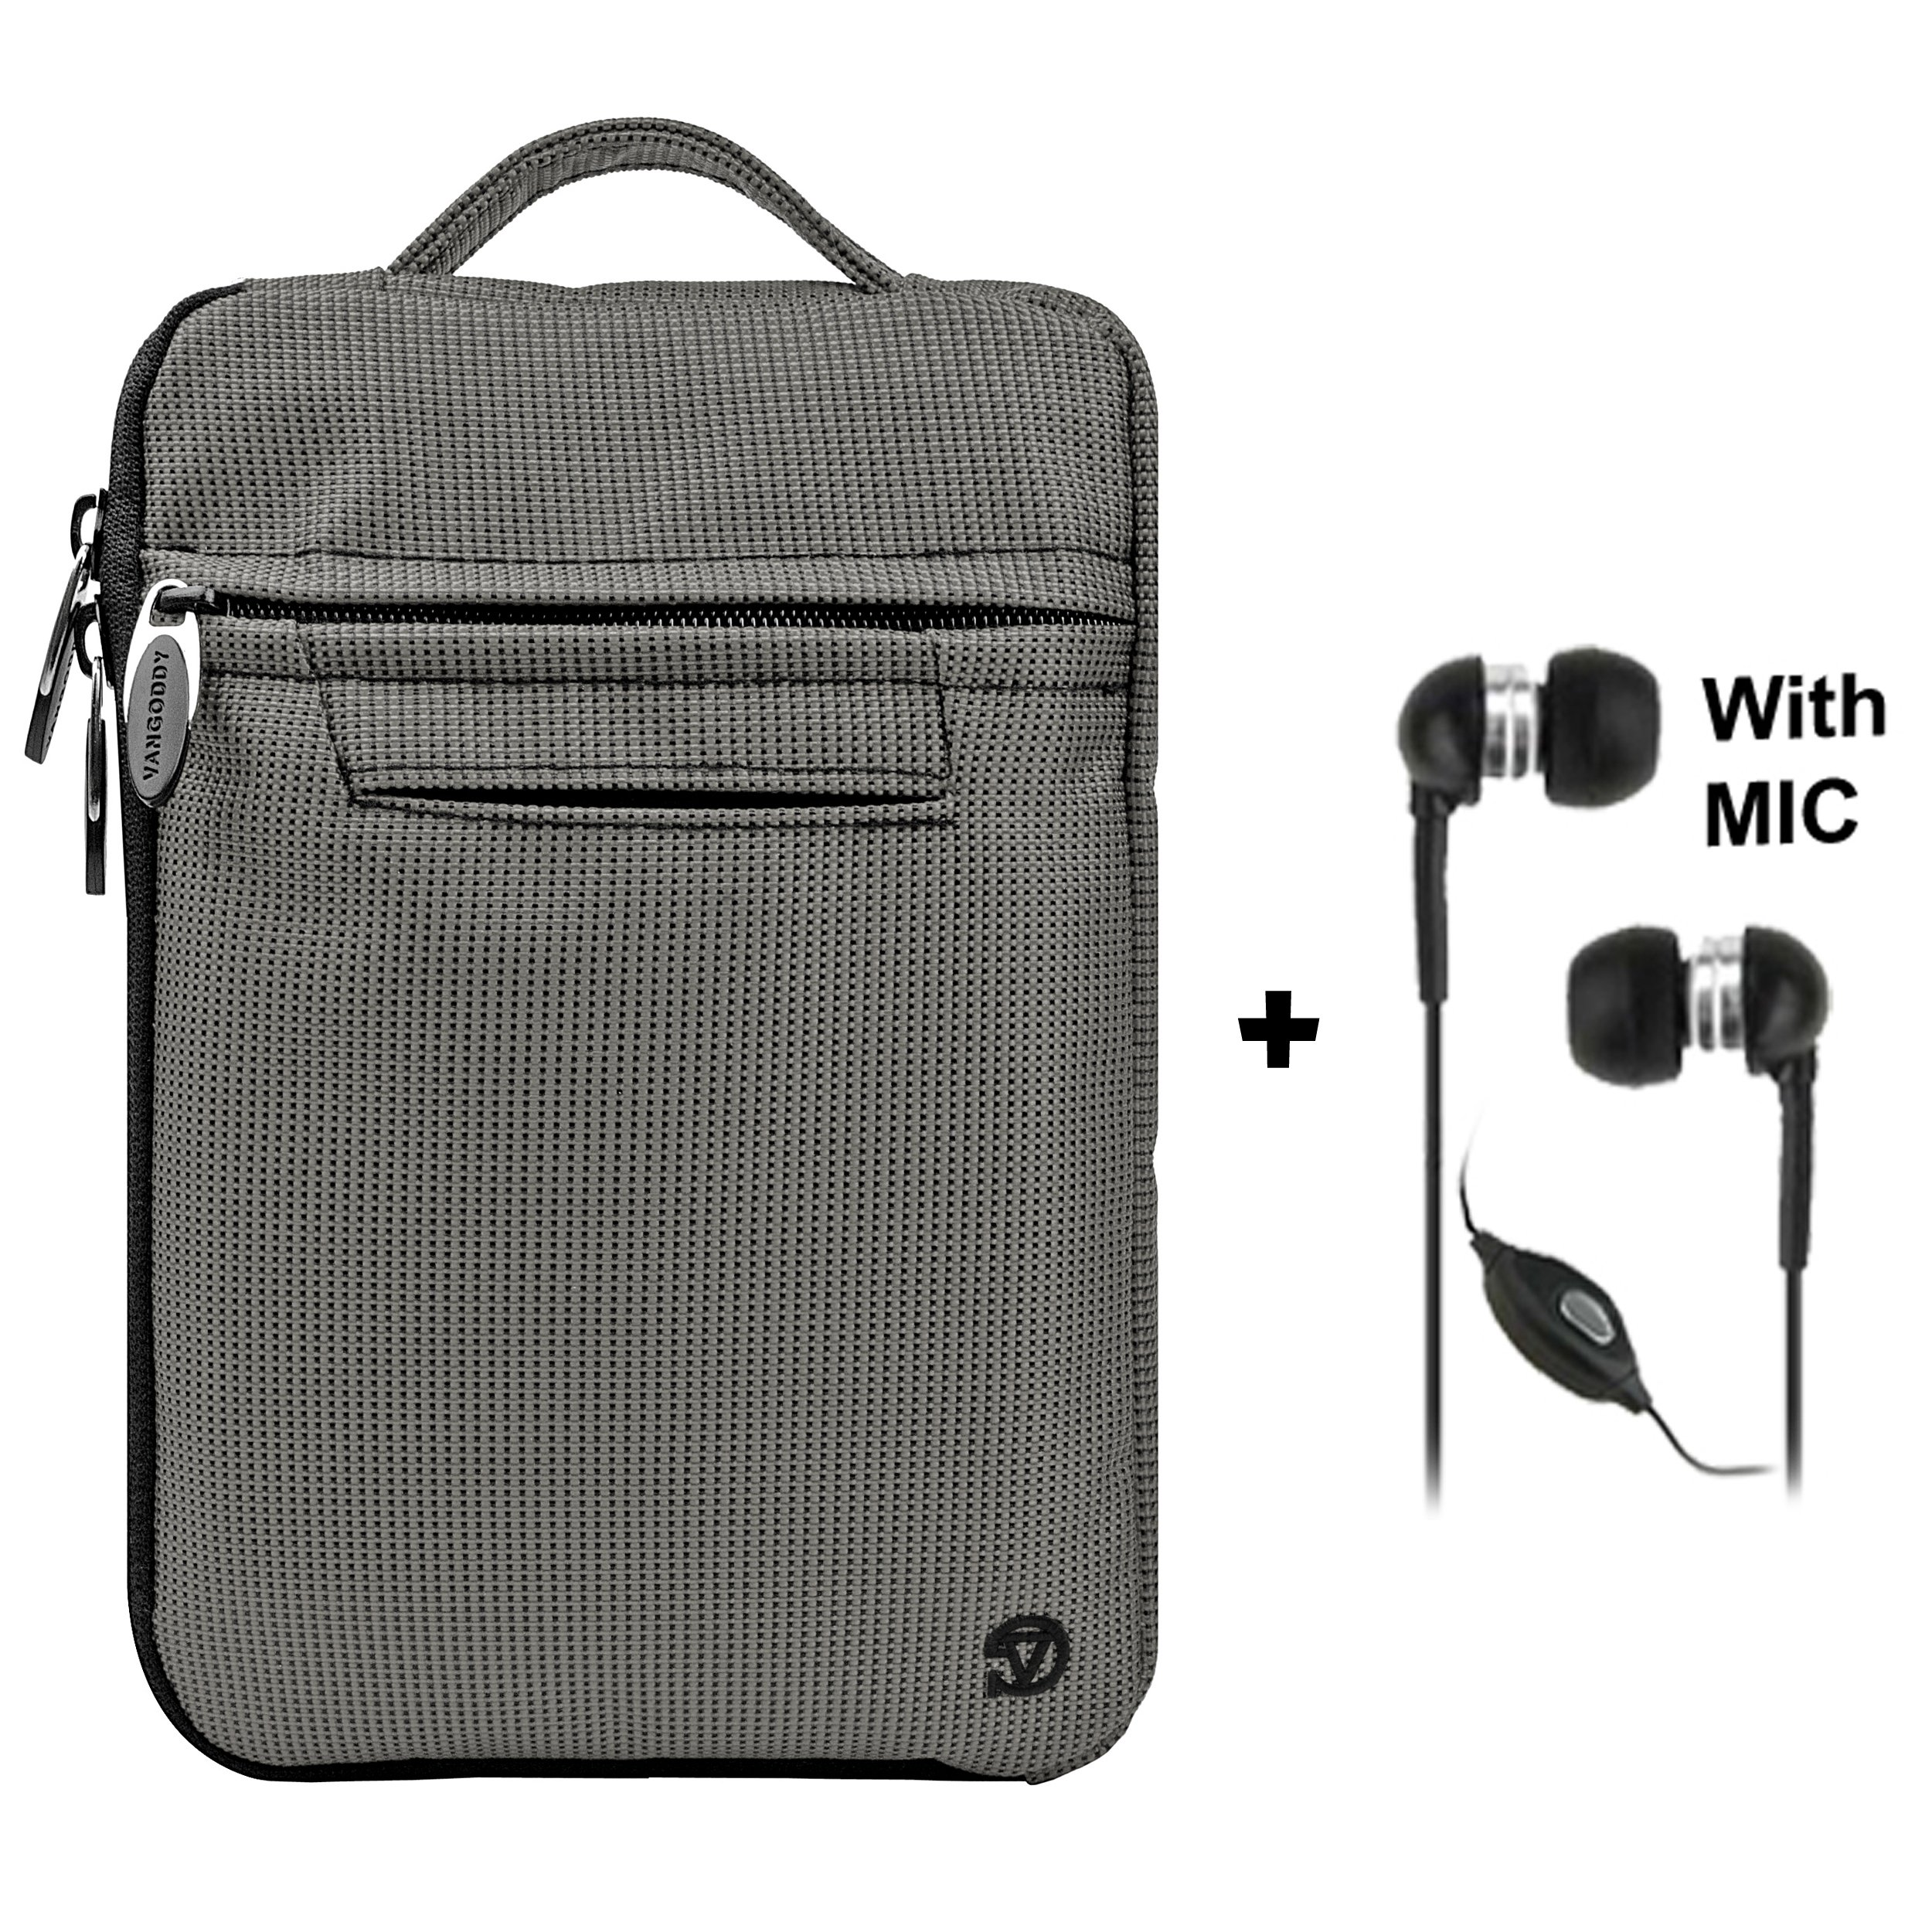 Gray Mighty Nylon Jacket Slim Compact Protective Sleeve Bag Case with accessories compartment for Pandigital Novel 7'' Color Multimedia eReader + Black Clear HD Noise Filter Ear buds Earphones Headphones with a MIC ( 3.5mm Jack )